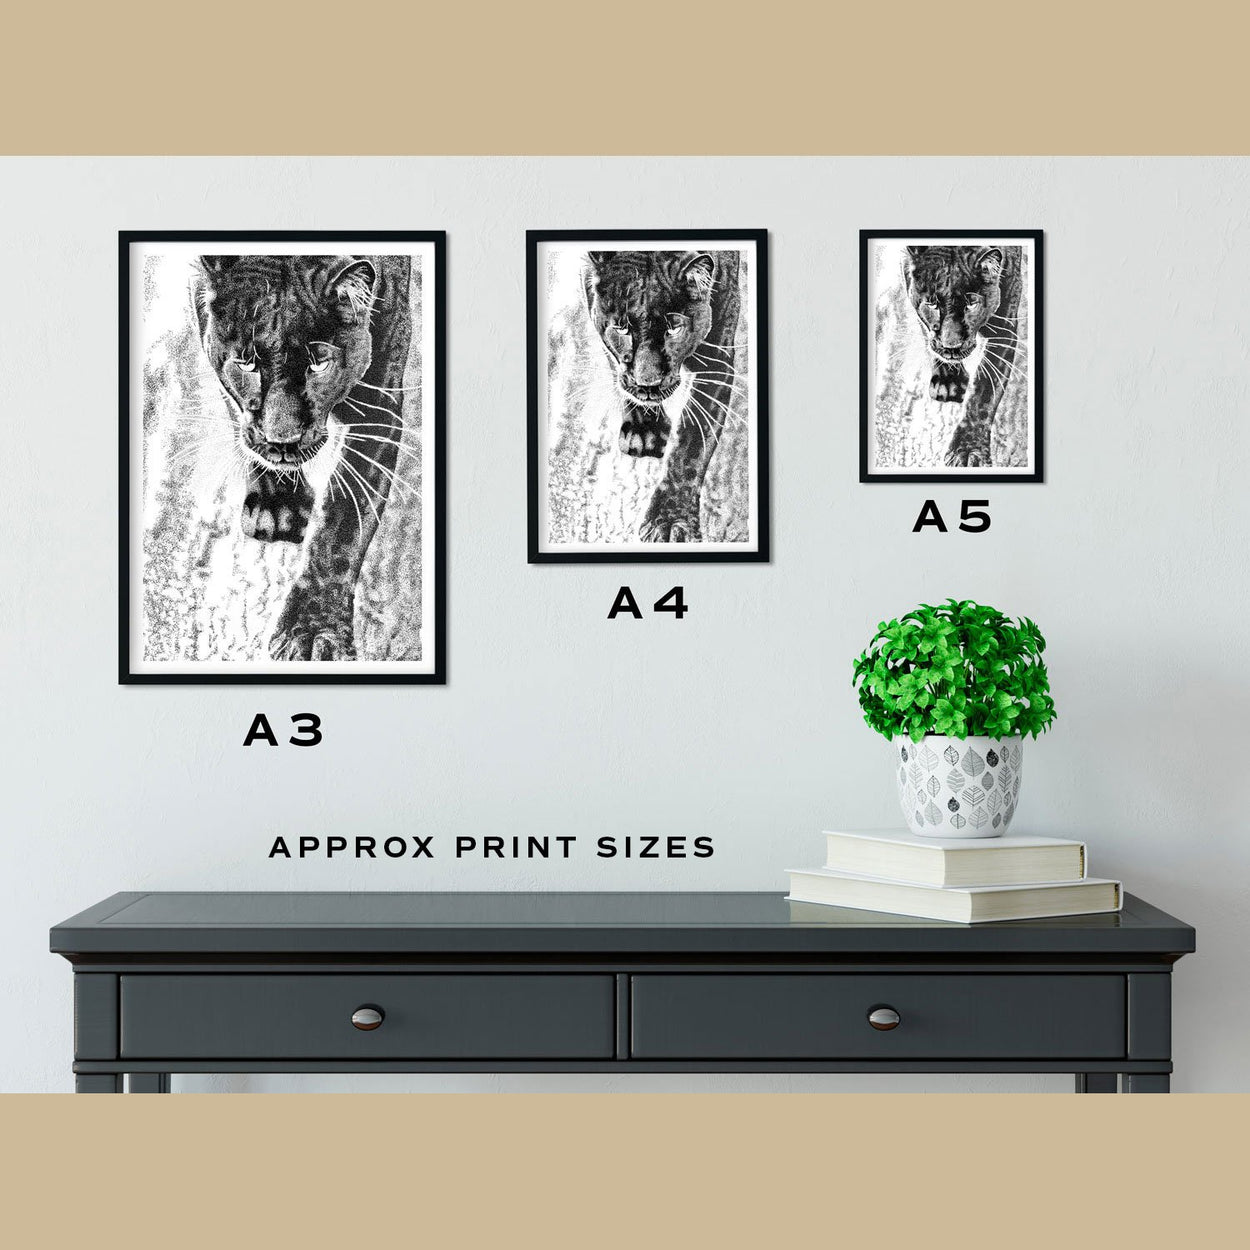 Black Leopard Wall Art Print Size Comparison - The Thriving Wild